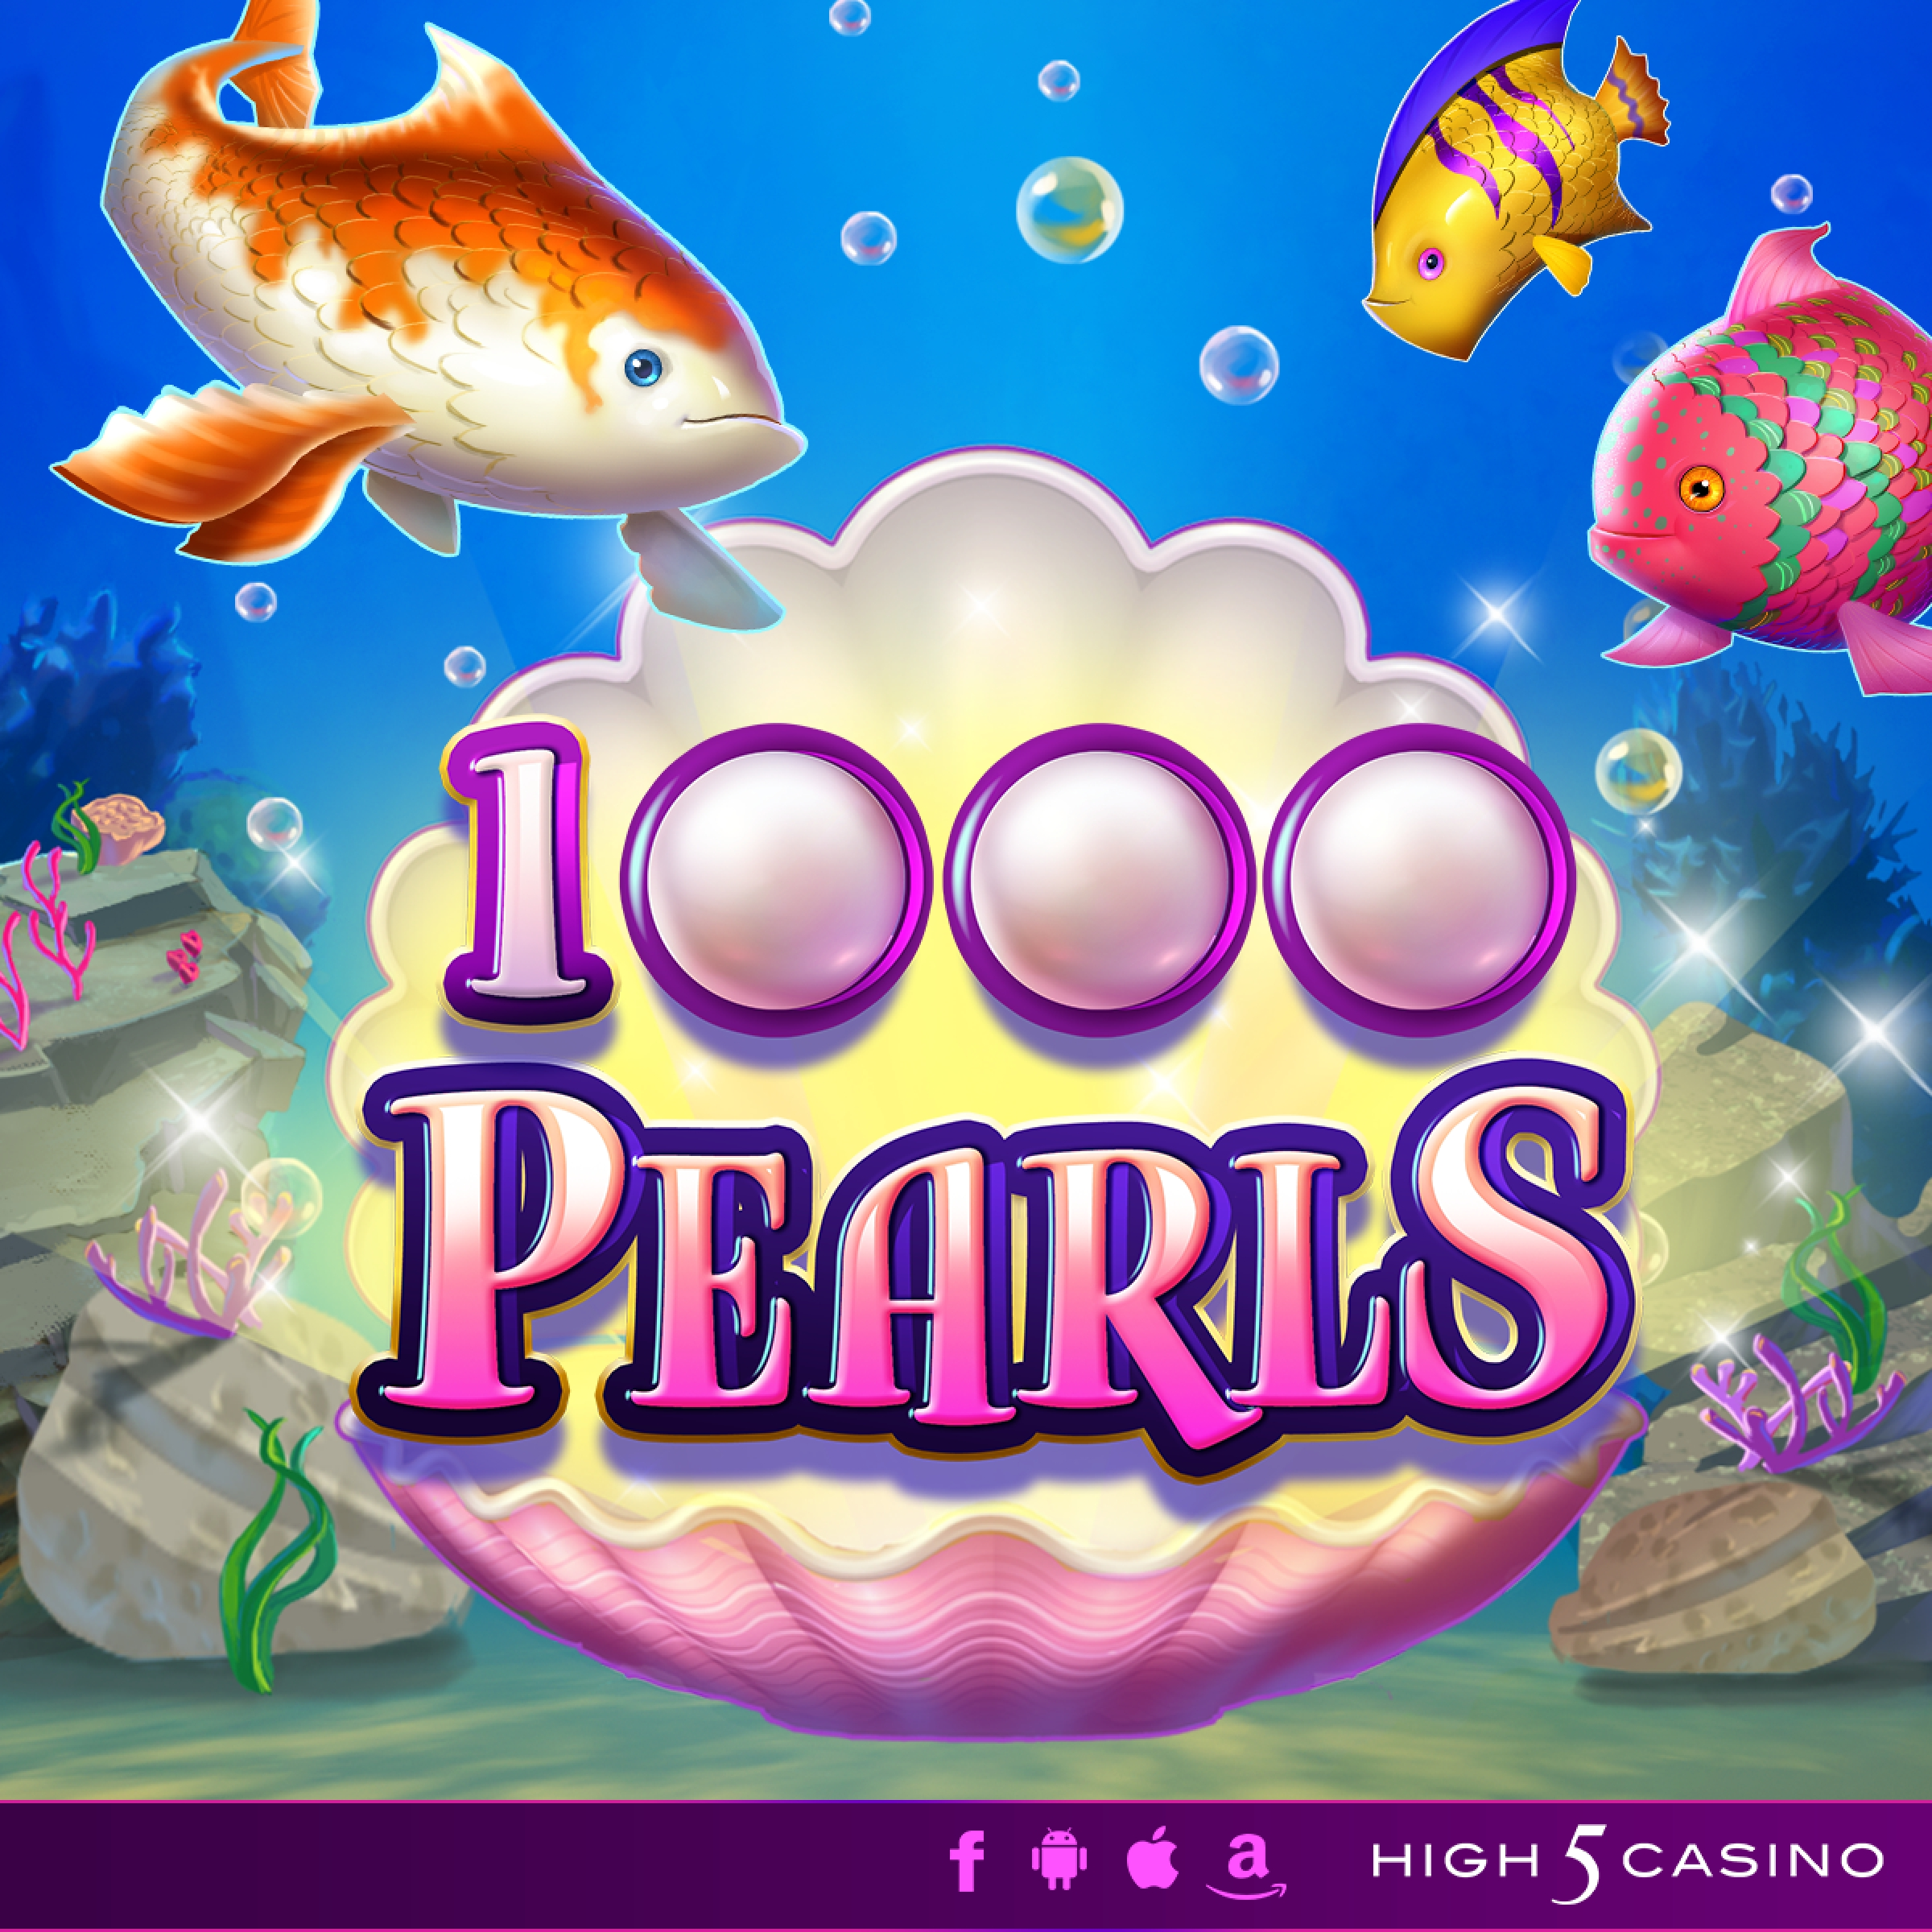 The 1000 Pearls Online Slot Demo Game by High 5 Games